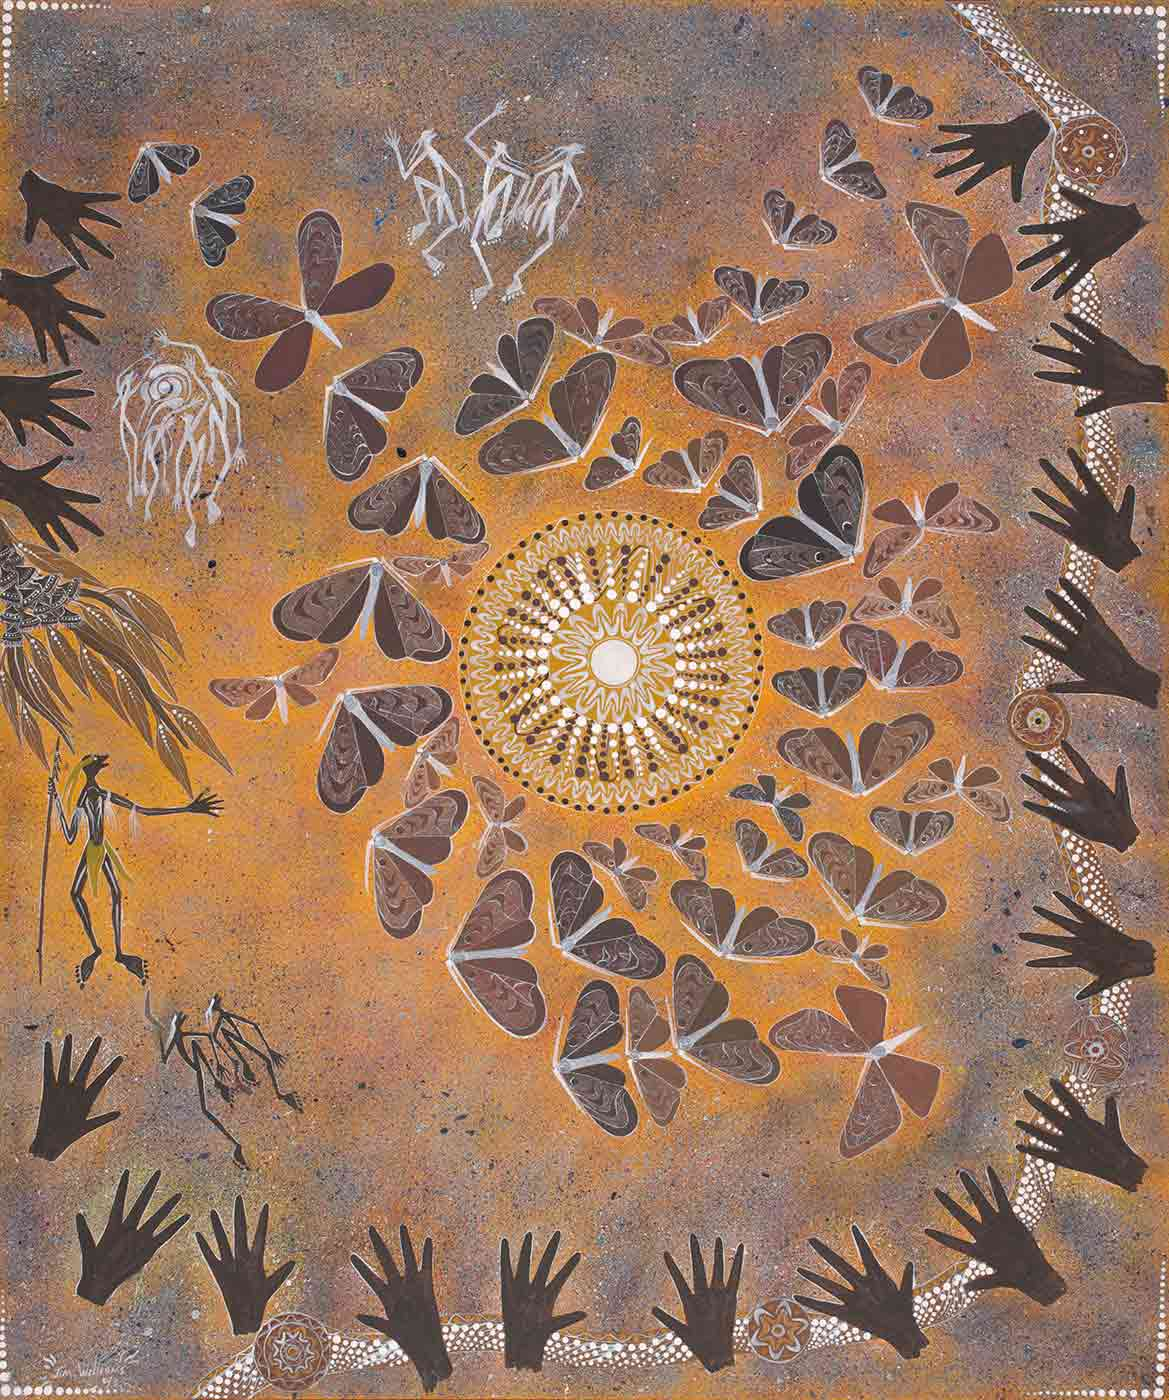 A painting featuring a central circular dotted shape, surrounded by brown bogong moths. Many hands are painted as well as three figures in black and seven white figures are painted at the upper left corner and centre top. - click to view larger image